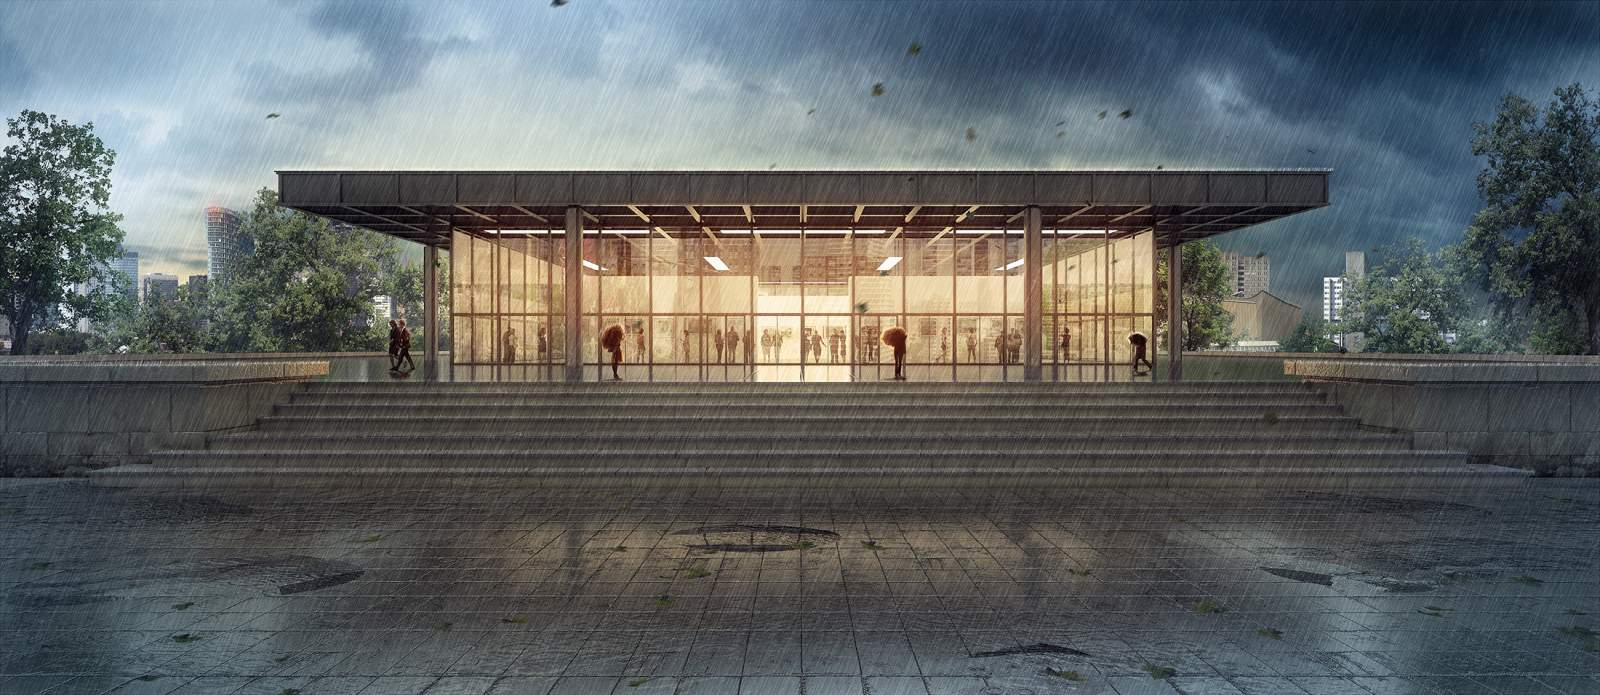 The Neue NationalGalerie Berlin